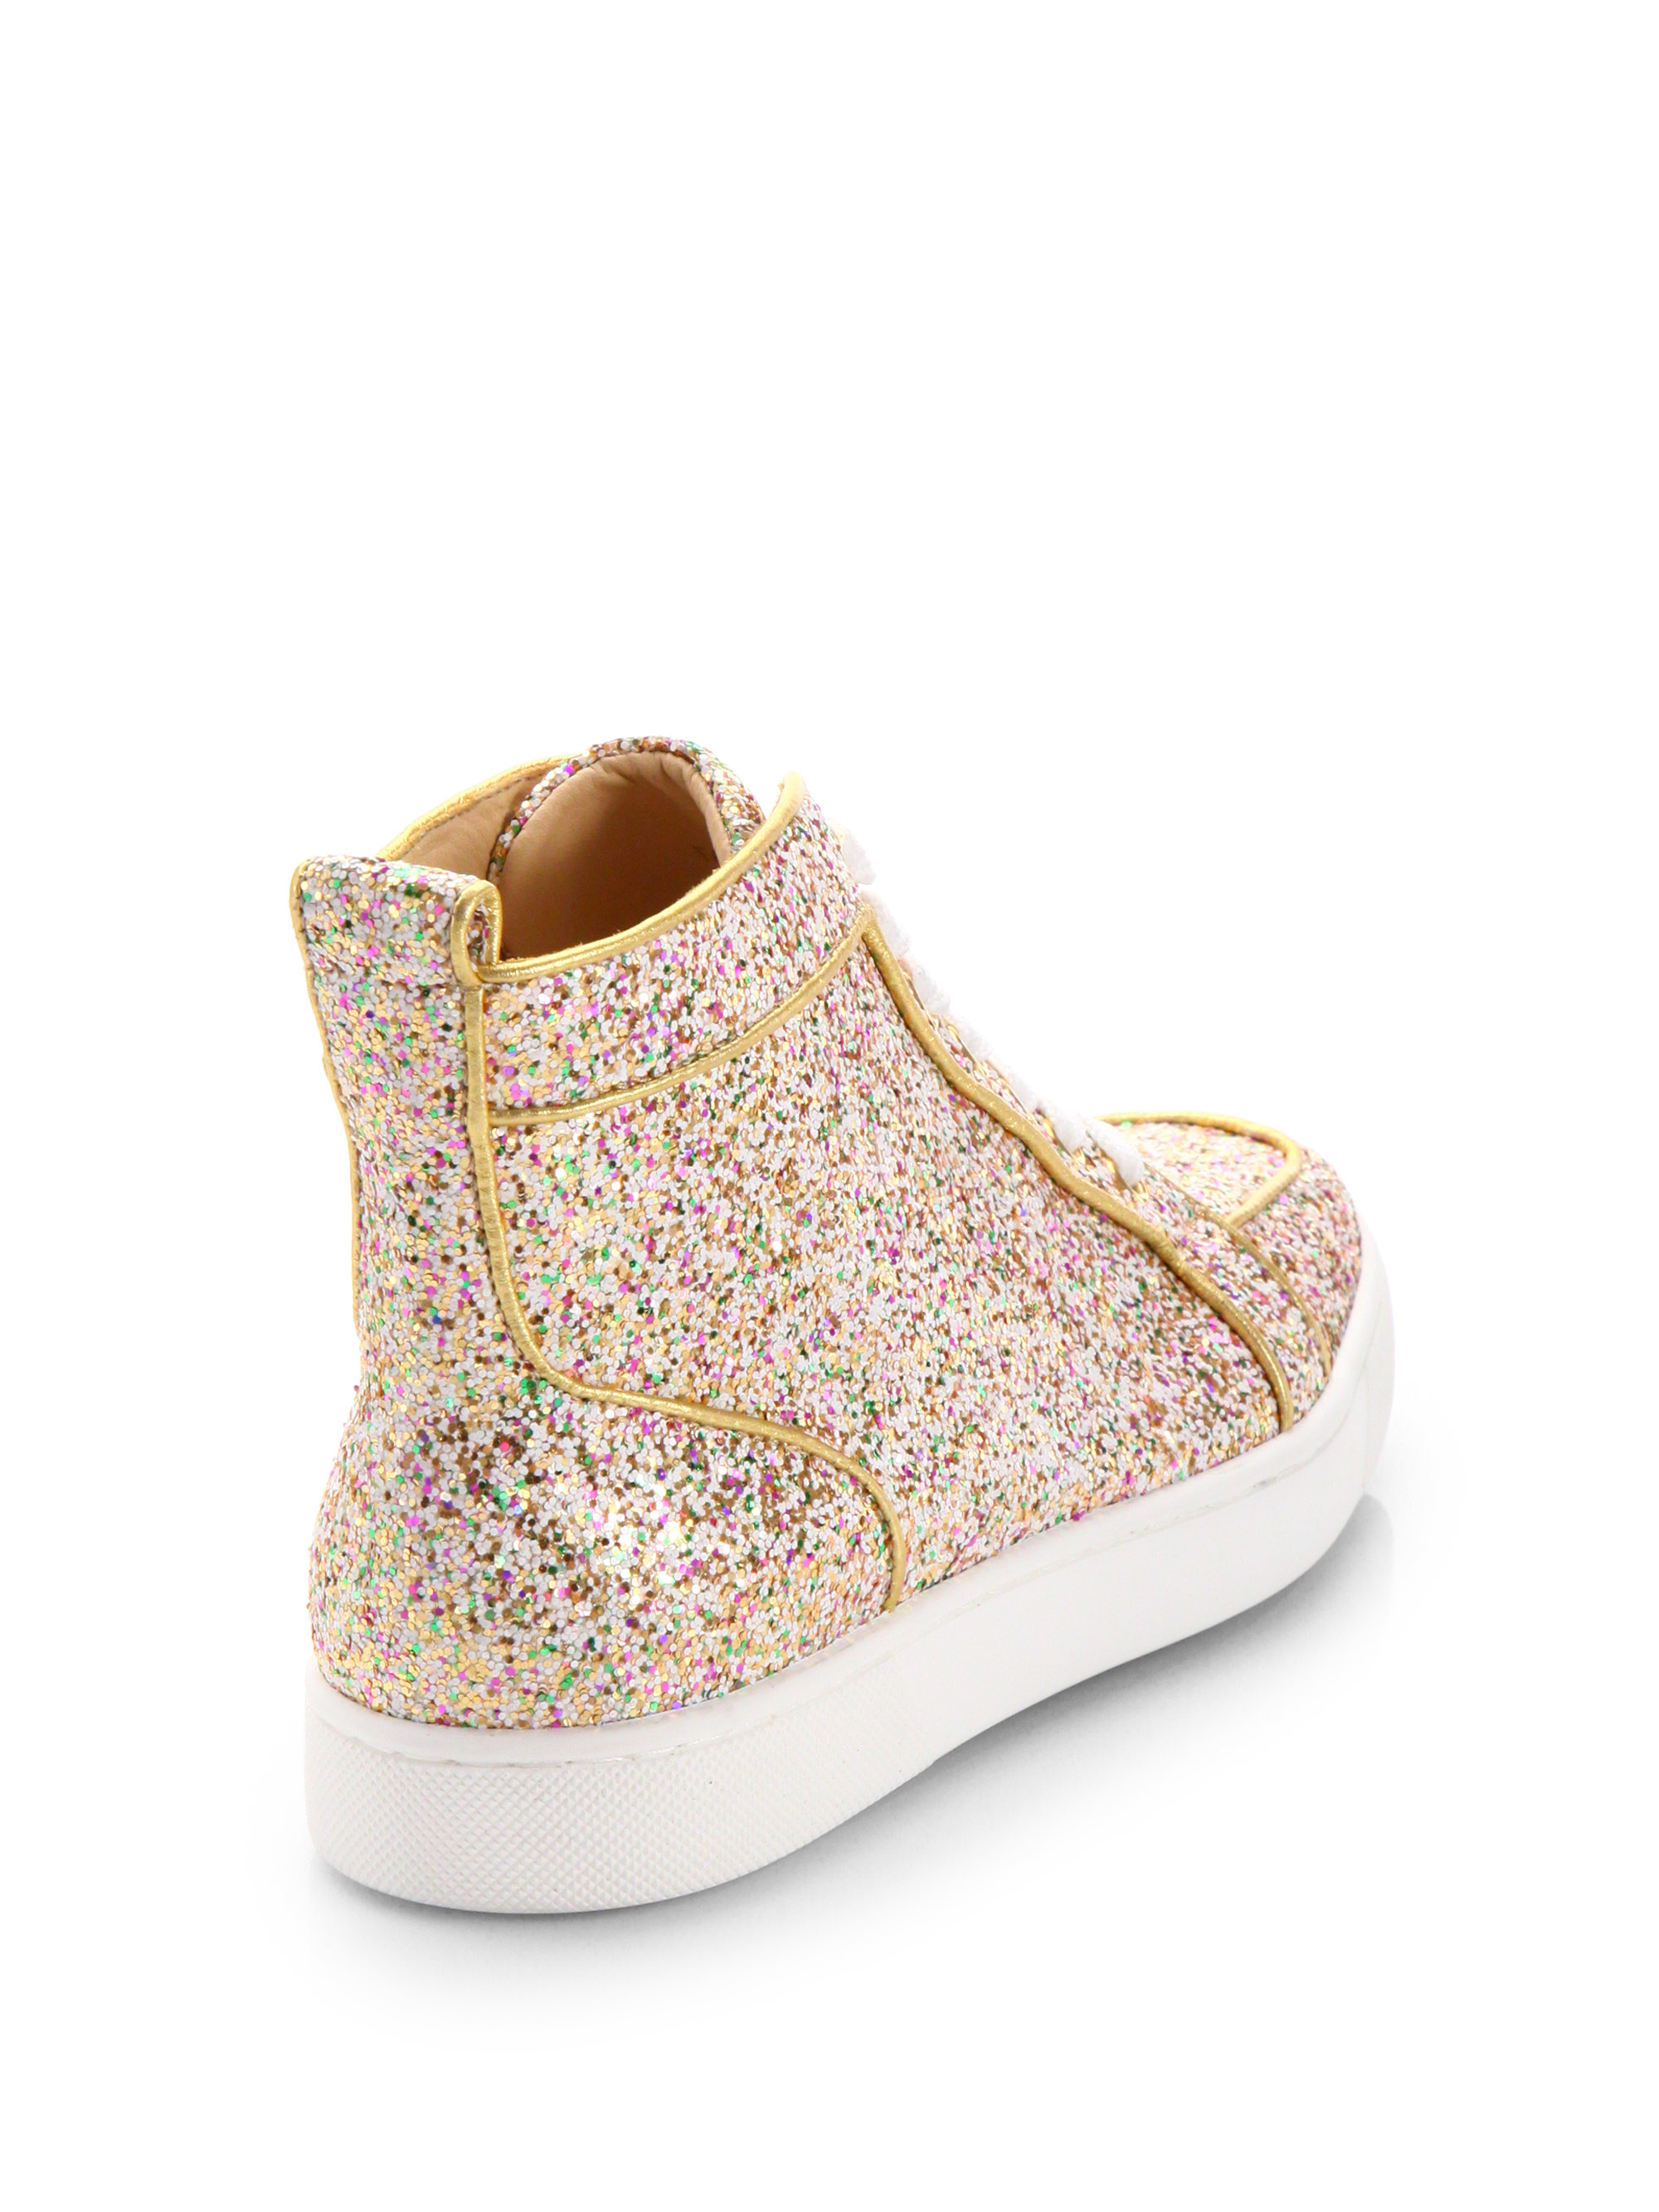 Lyst - Christian Louboutin Glitter Hightop Sneakers in Metallic 4bfdbc7f3a